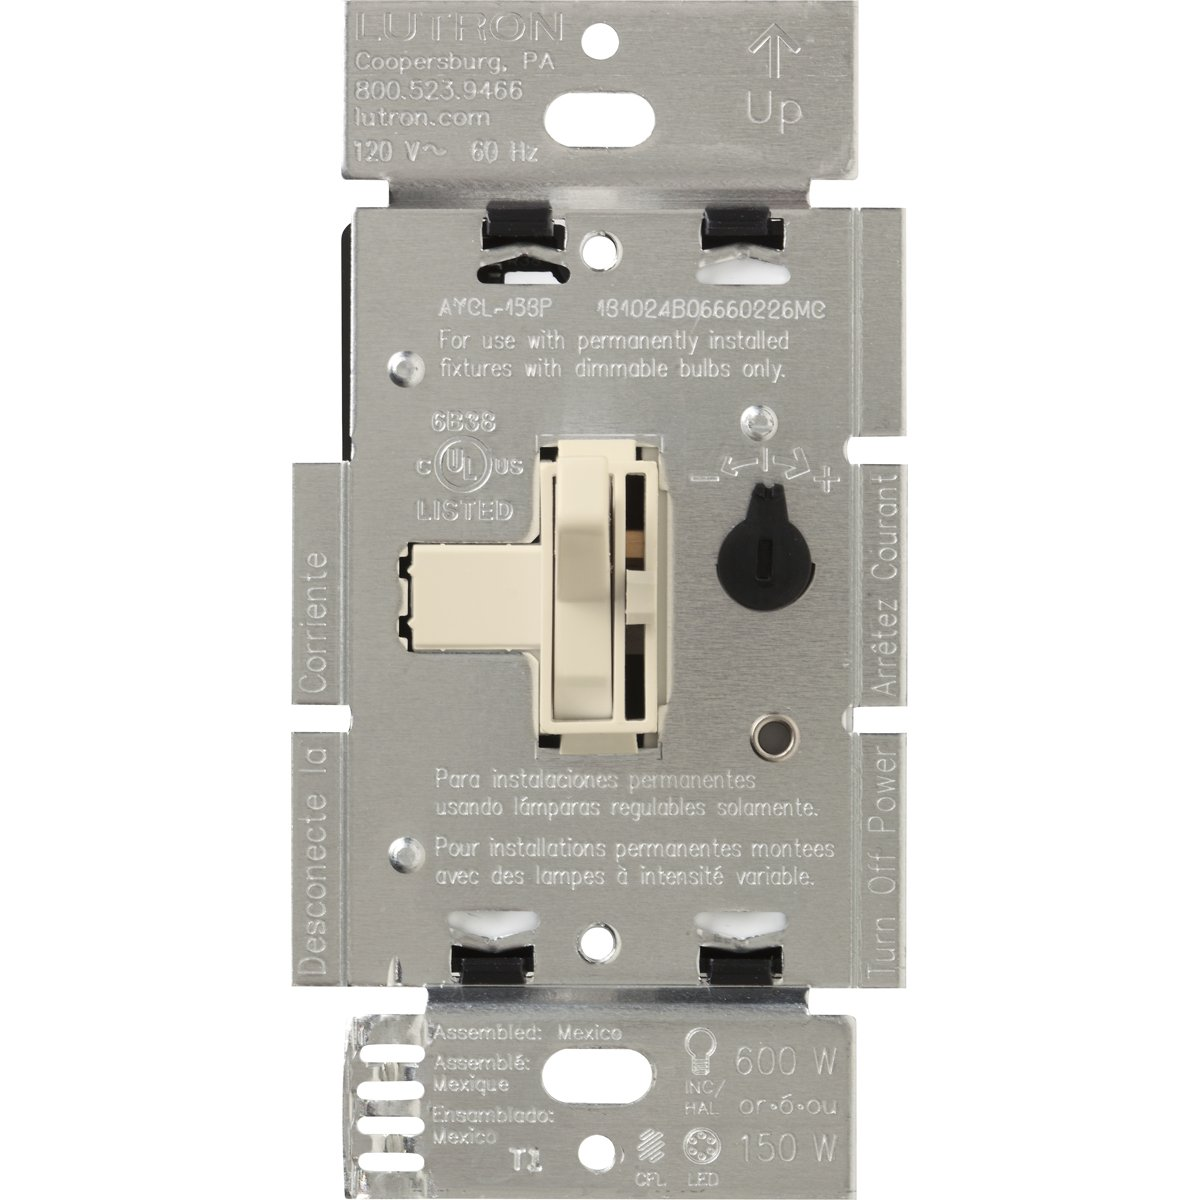 71WQR FMfhL._SL1200_ lutron tgcl 153ph la toggler cfl led single pole 3 way toggler lutron ayfsq-f wiring diagram at bayanpartner.co